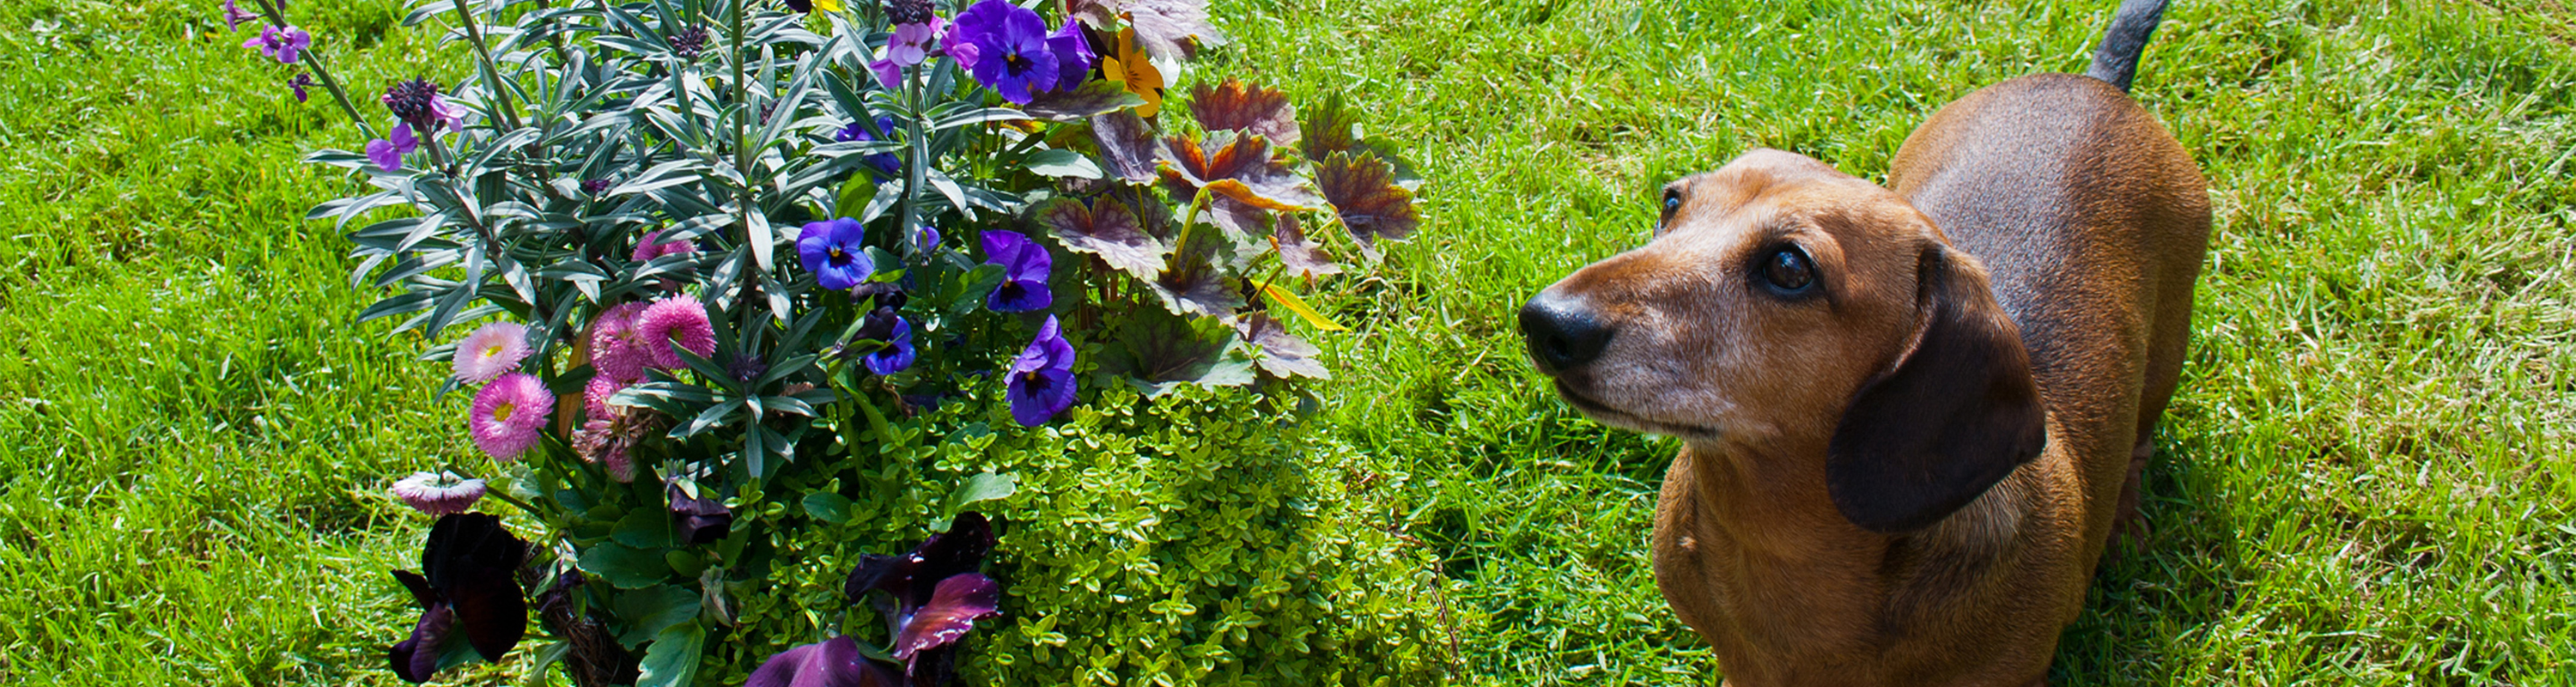 Dog next to flowers